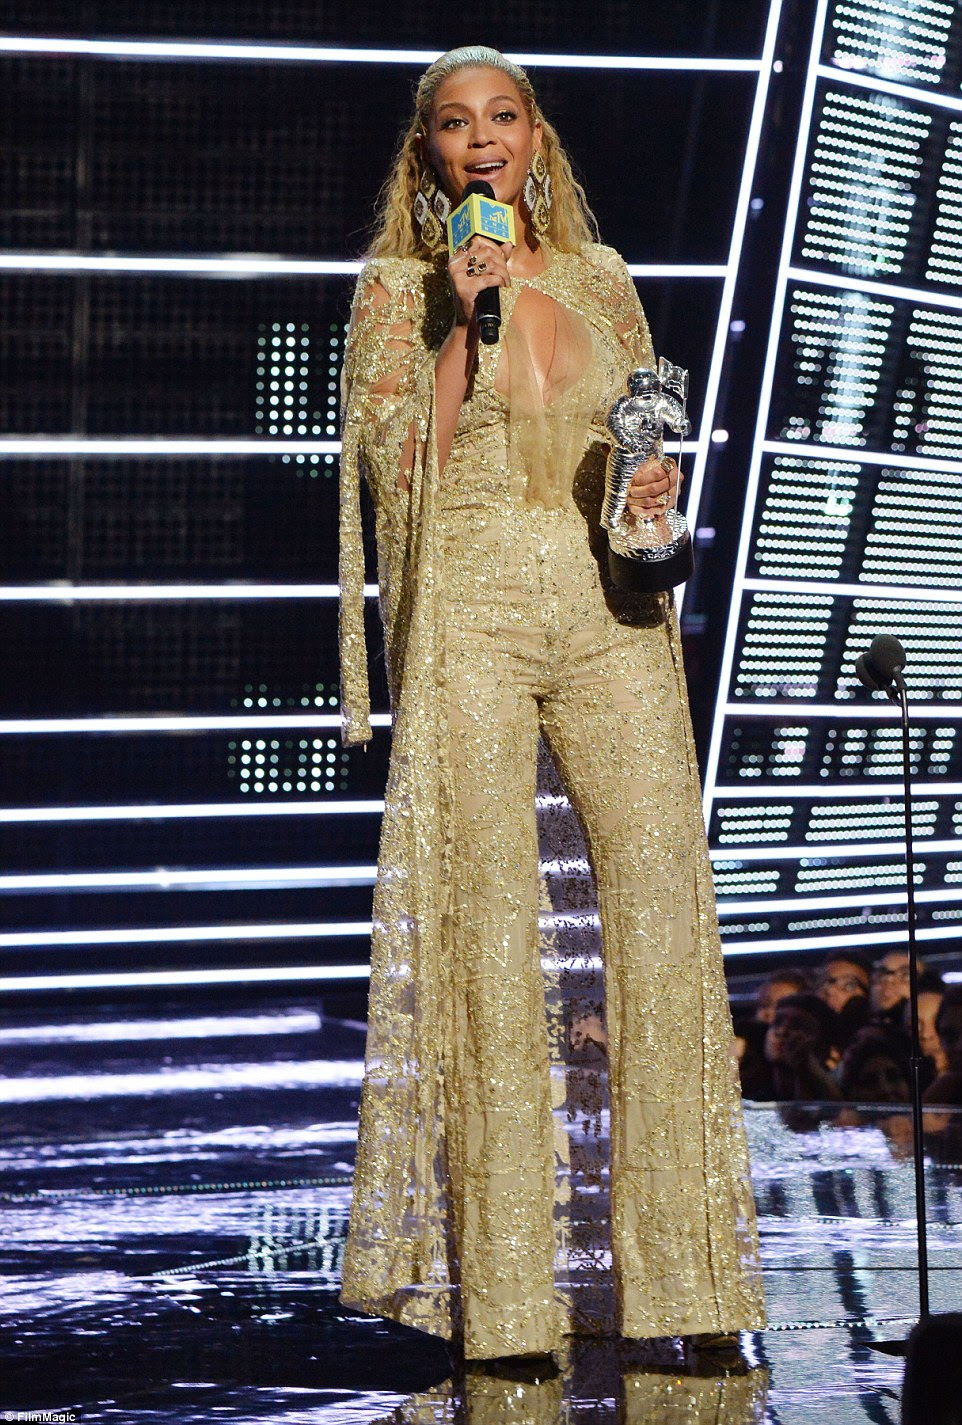 Going for the gold: Beyonce took home the Best Female Video award at the 2016 MTV Video Music Awards in New York On Friday